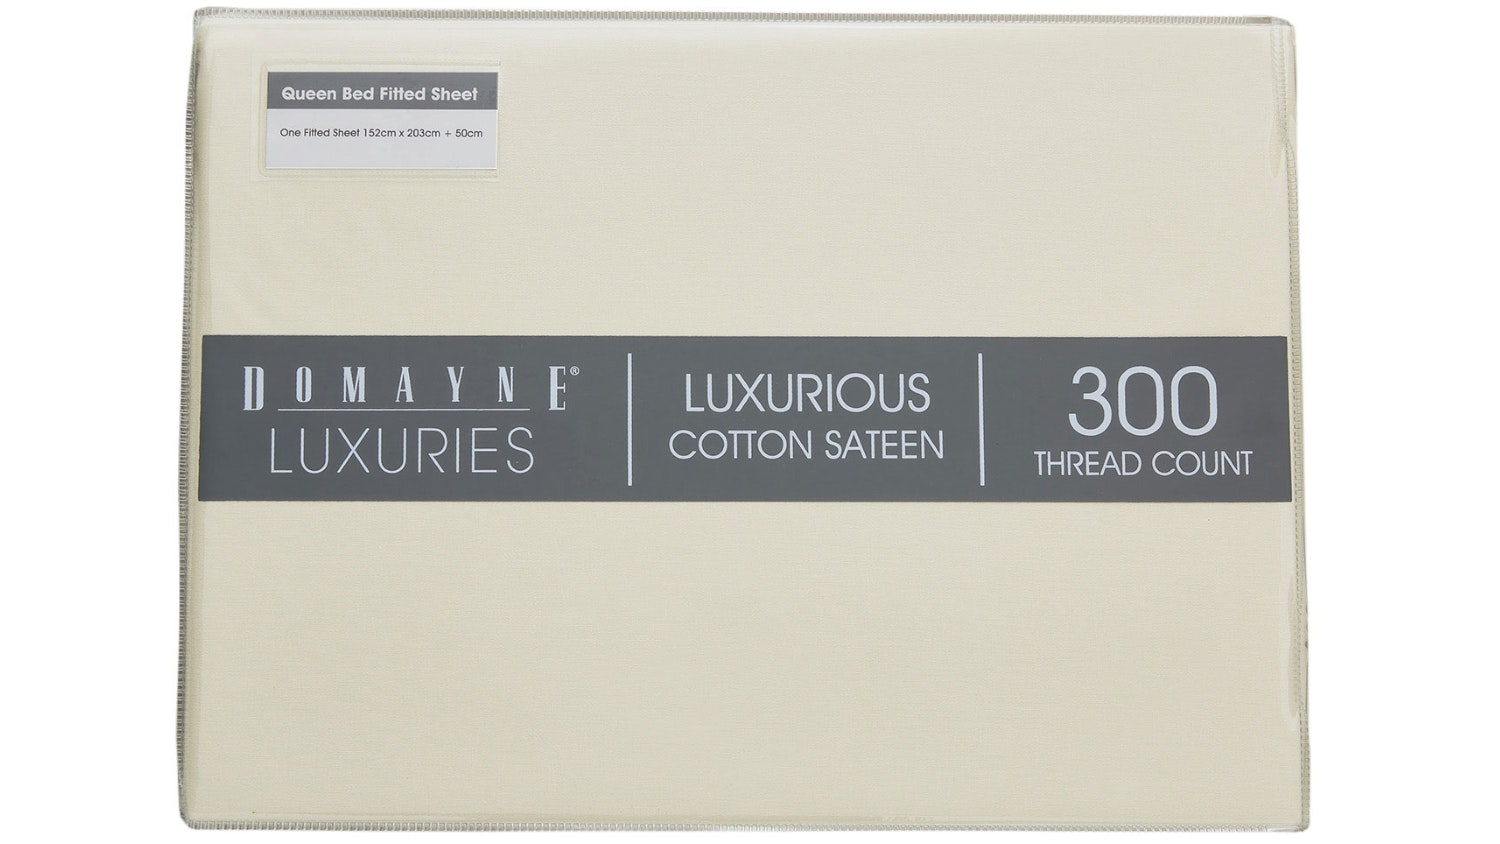 Domayne Luxuries 300TC Fitted Sheet - Linen